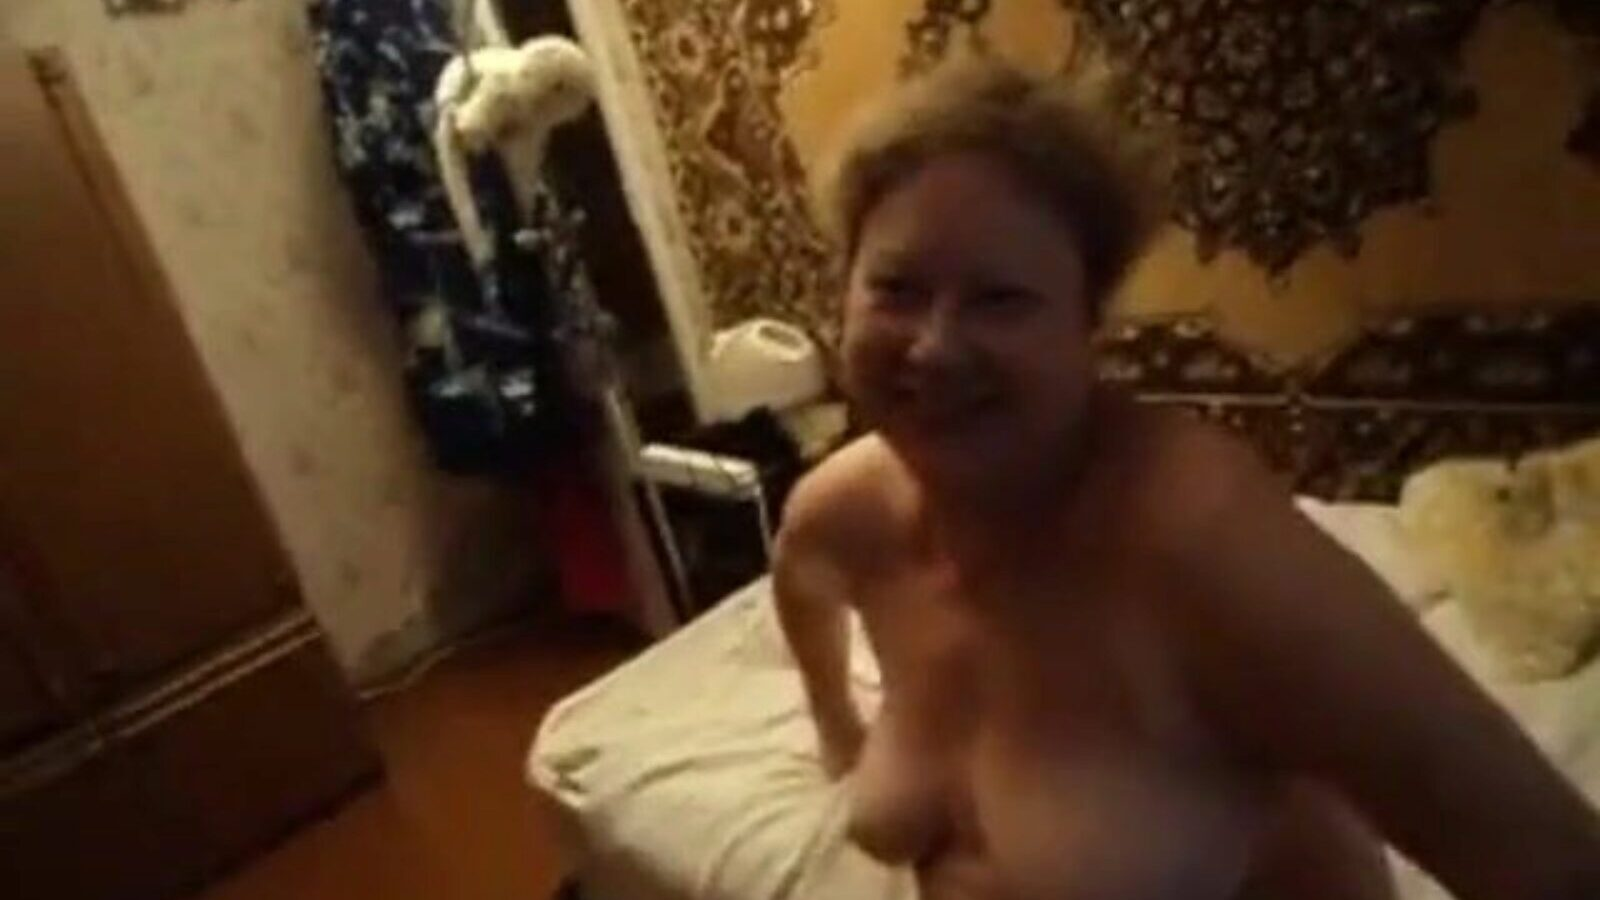 REAL TABOO MOM GRANNY BOY SON OLD  MATURE YOUNG MATURE mother I'd like to fuck Charming undressed Mature hawt nymph with a marvelous bod in a pretty delicate ravishing home fuckfest with a youthful lover Passion, fondles big O jism Charm, ecstasy of mutual intimacy and enjoy POV REAL